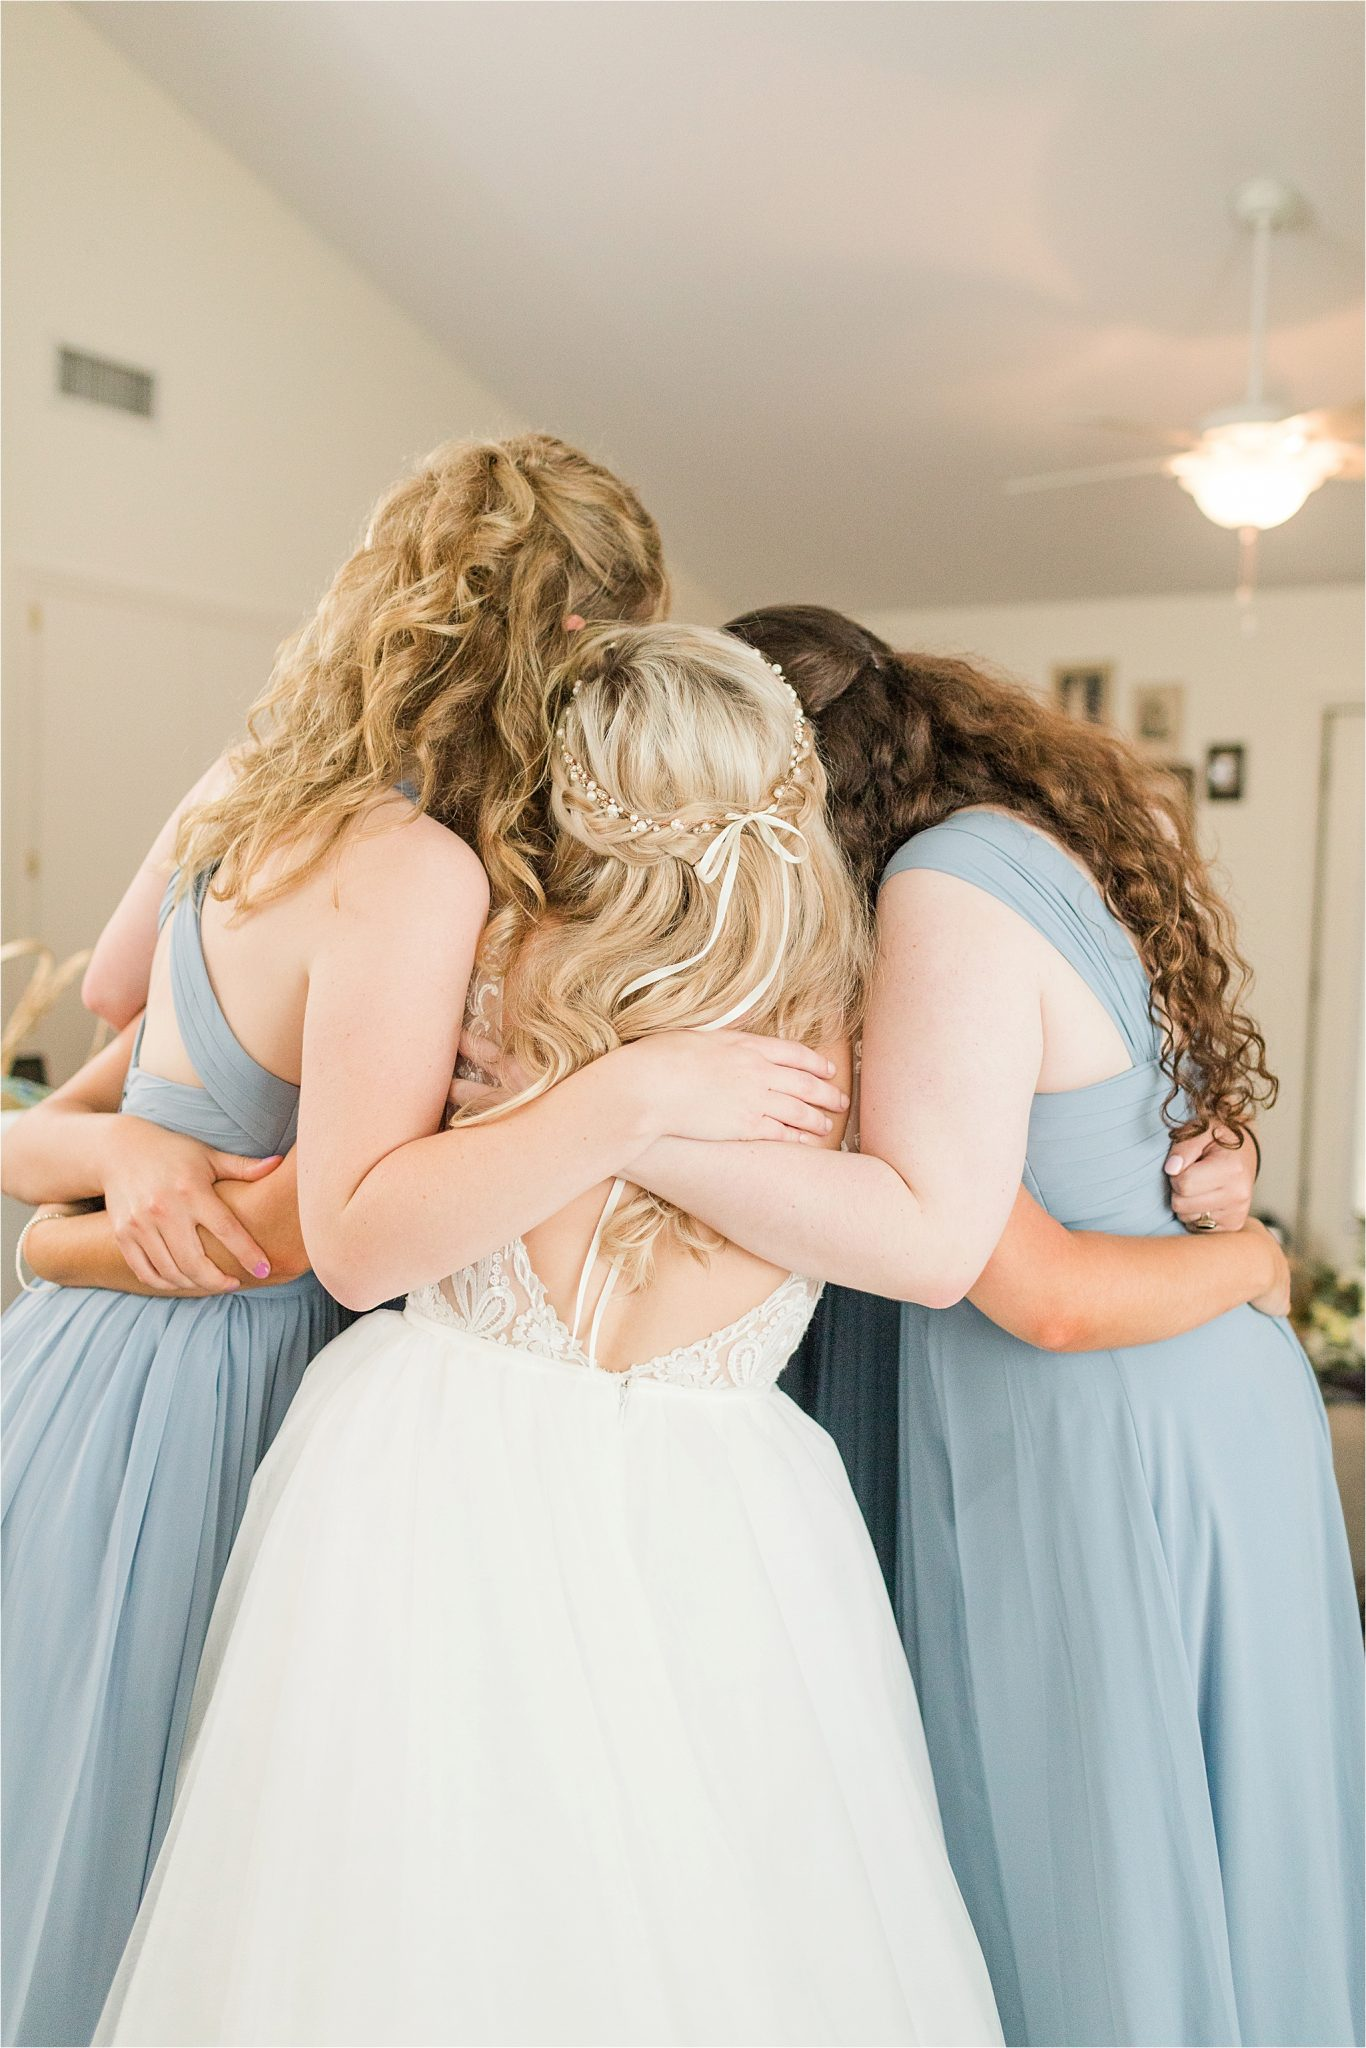 bride-bridesmaids-precious-moments-periwinkle-dusty-light-blue-wedding-cute-photo-ideas